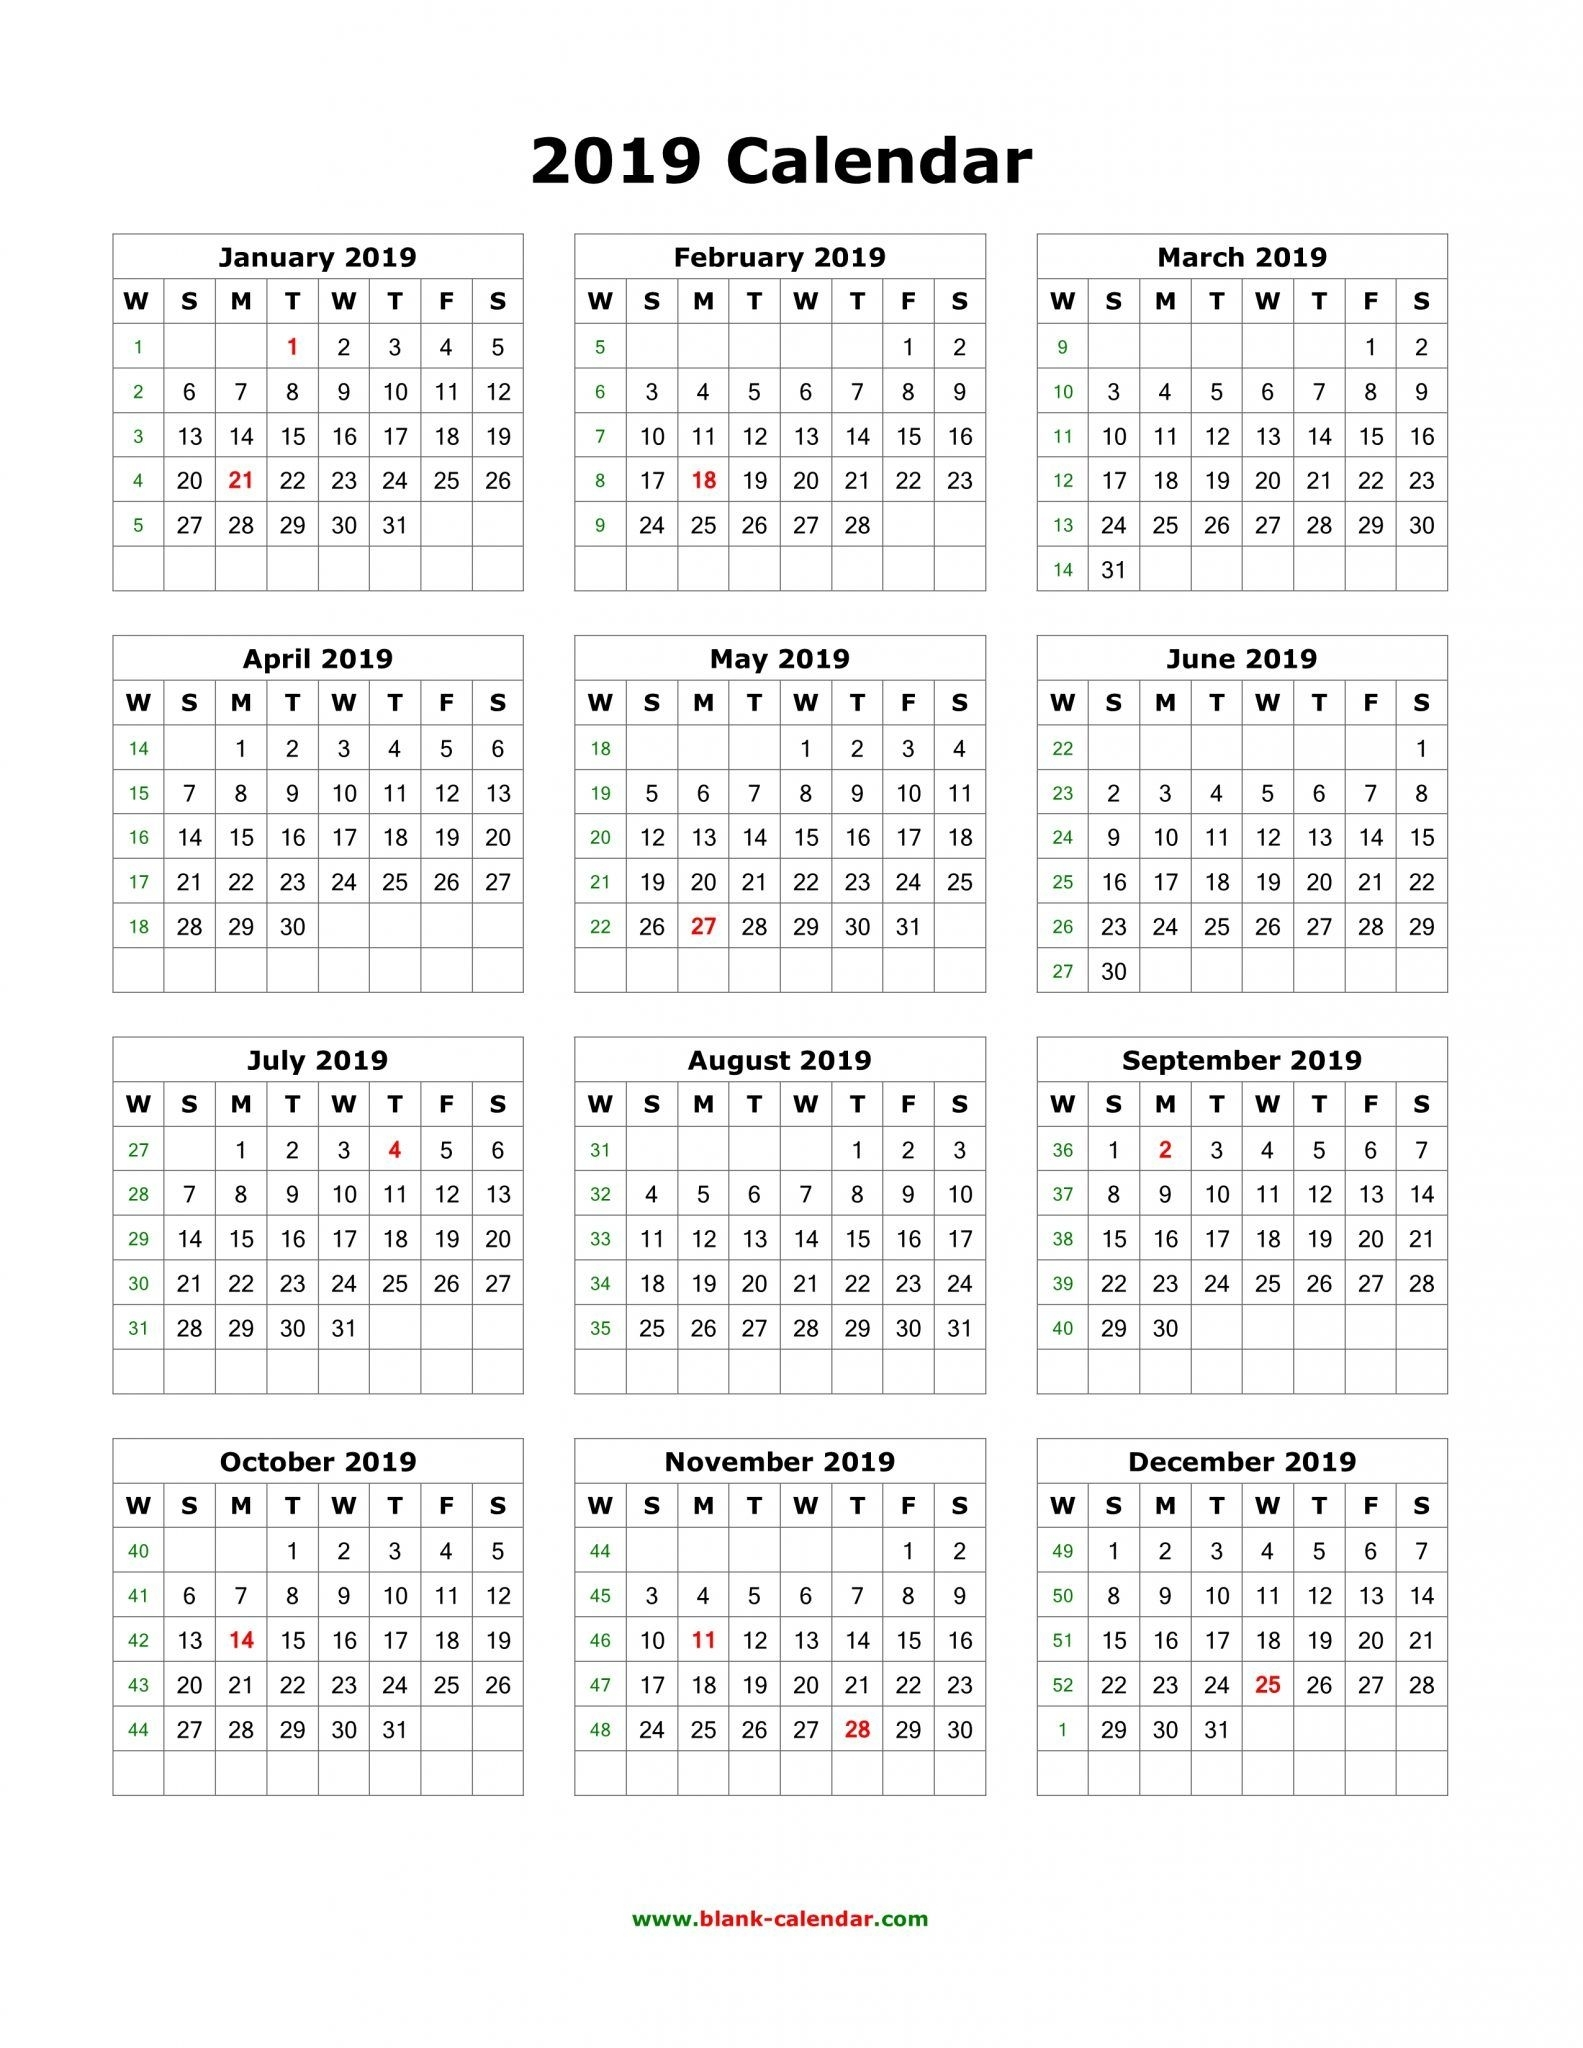 Download Blank 2019 Calendar Templates | 12 Month Calendar In One inside 12 Month Calendar To Print